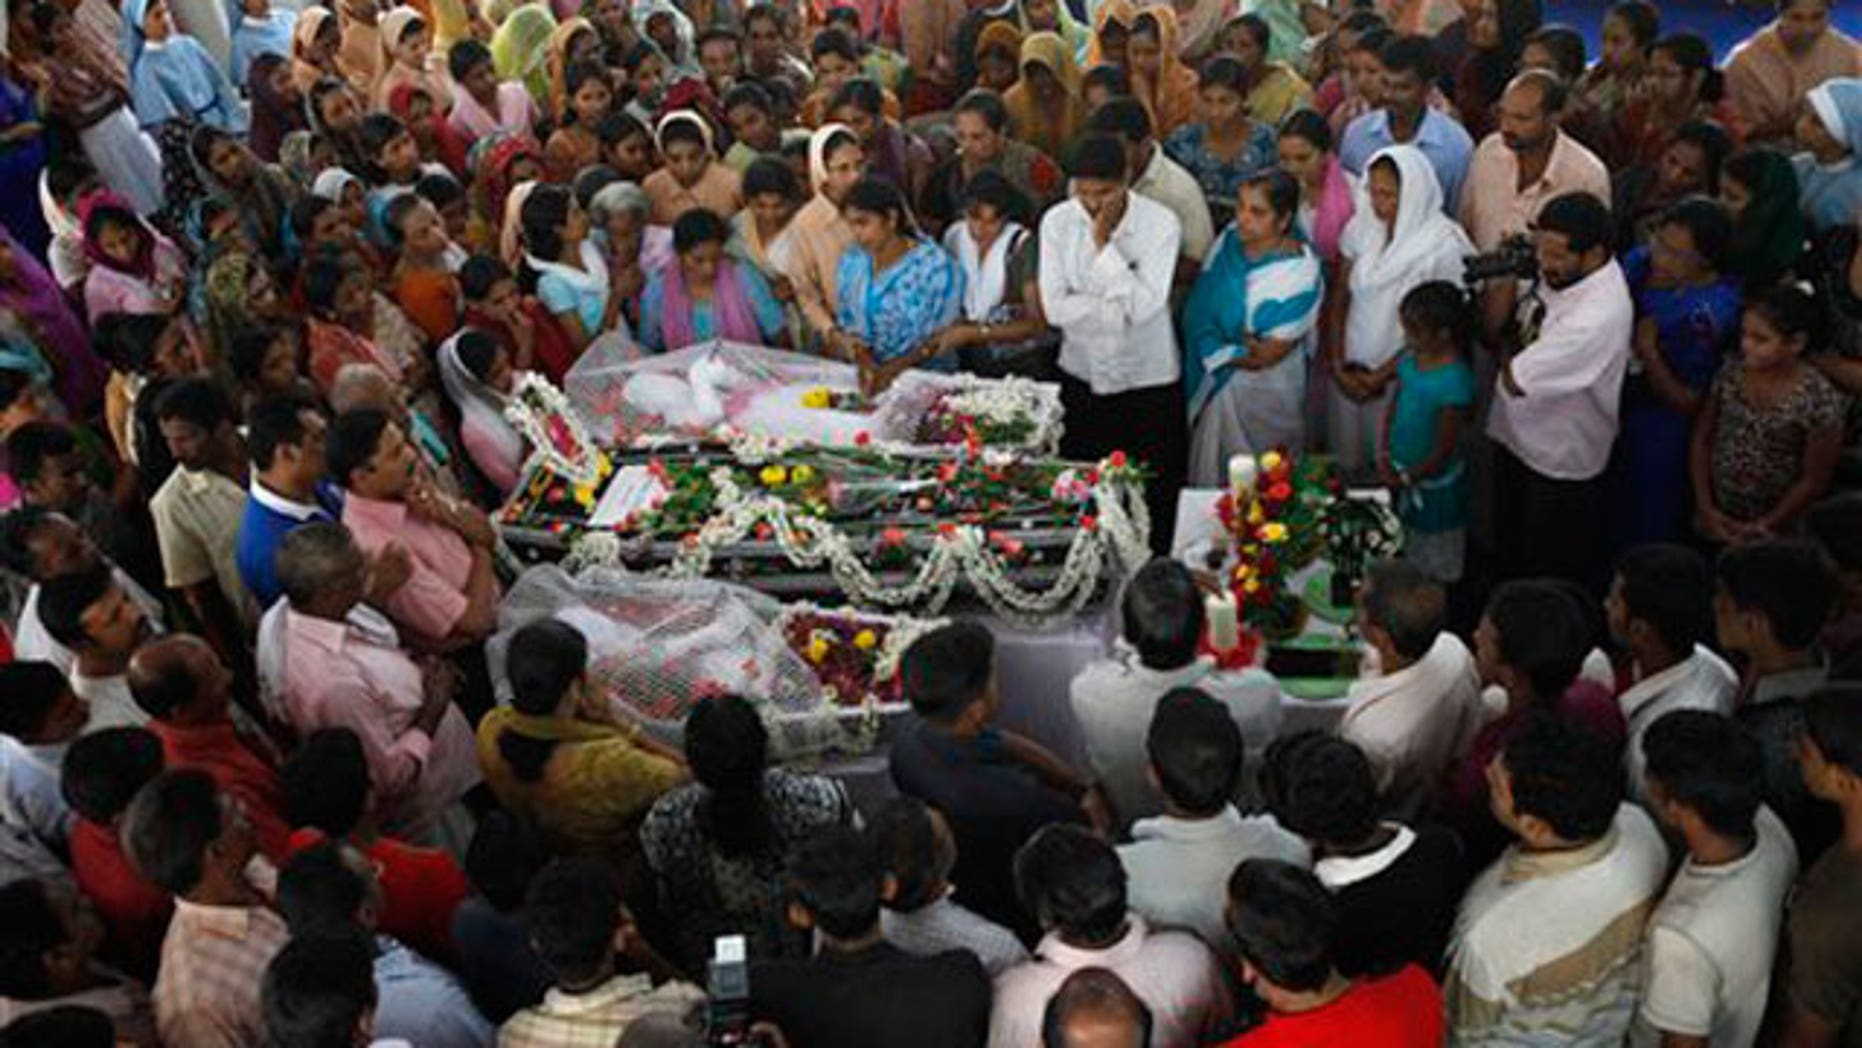 May 23: Relatives grieve next to the bodies of victims who died in an Air India Express plane crash in Mangalore, India.